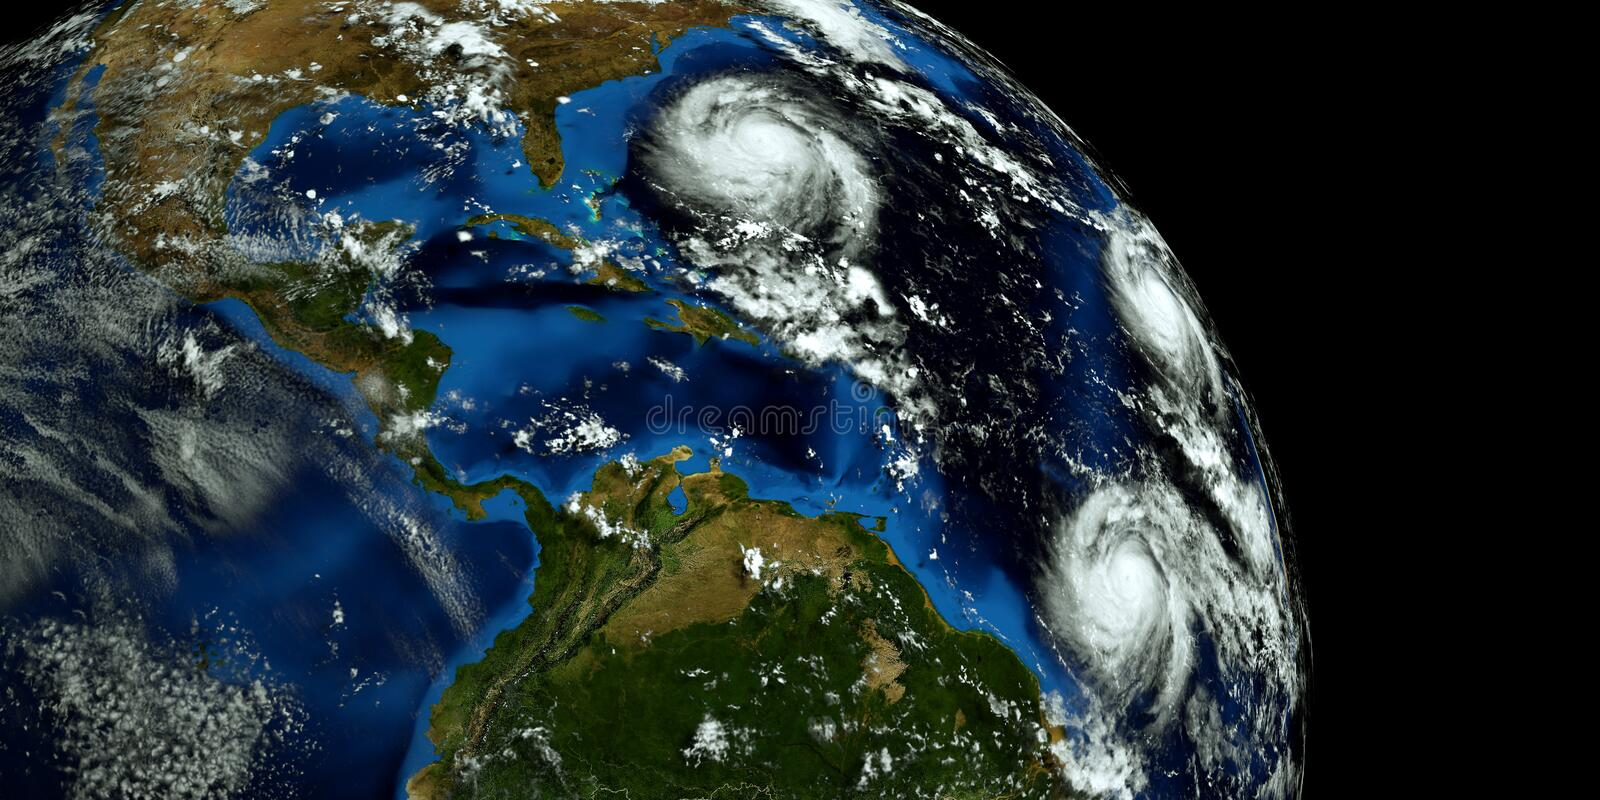 Extremely detailed and realistic high resolution 3D illustration of 2 hurricanes approaching the USA. Shot from Space. Elements of. This image are furnished by stock photo